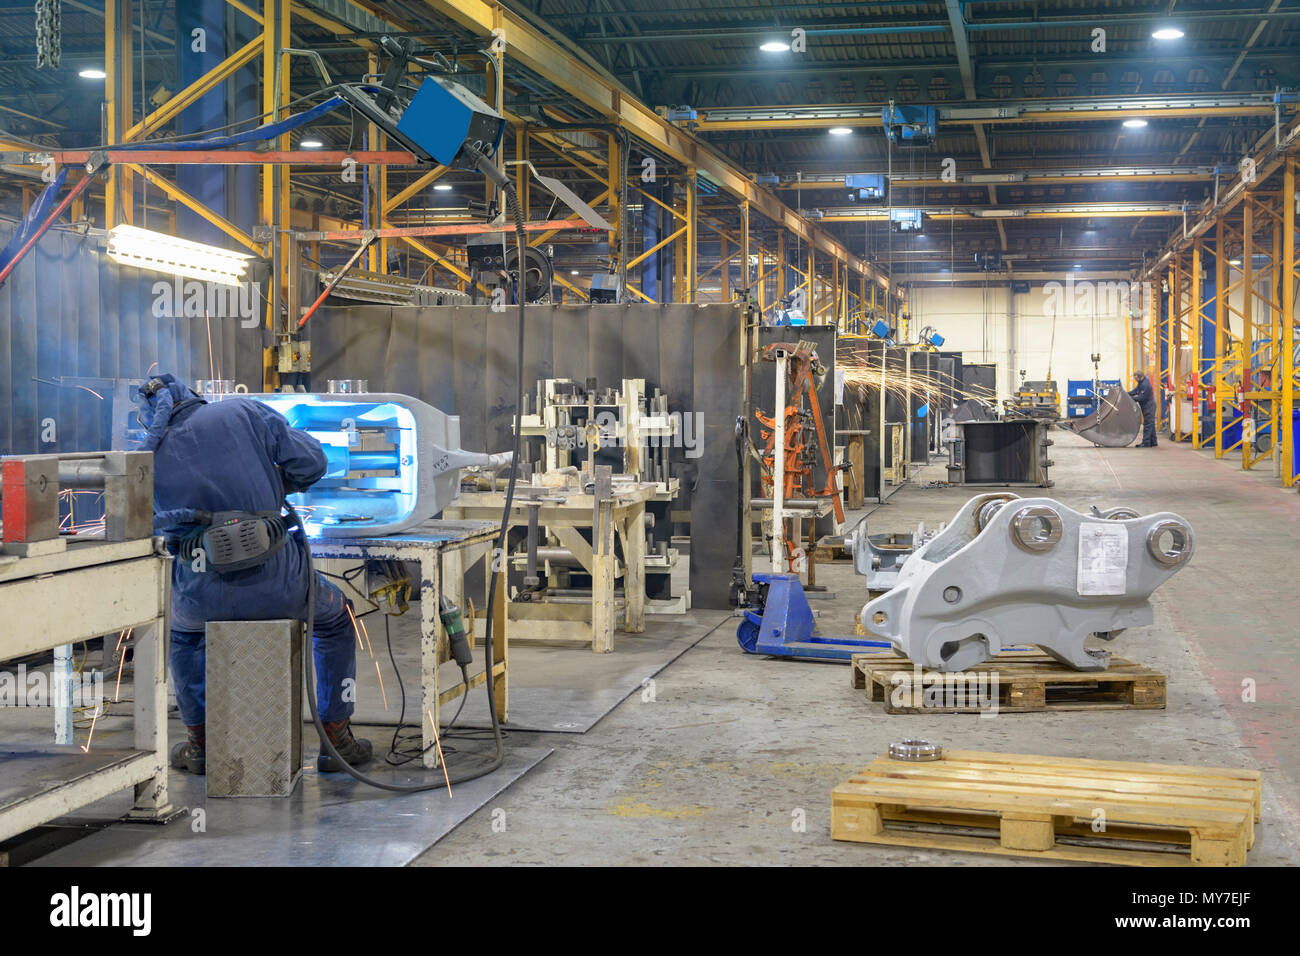 Wide angle view of engineering factory with welder working in foreground - Stock Image